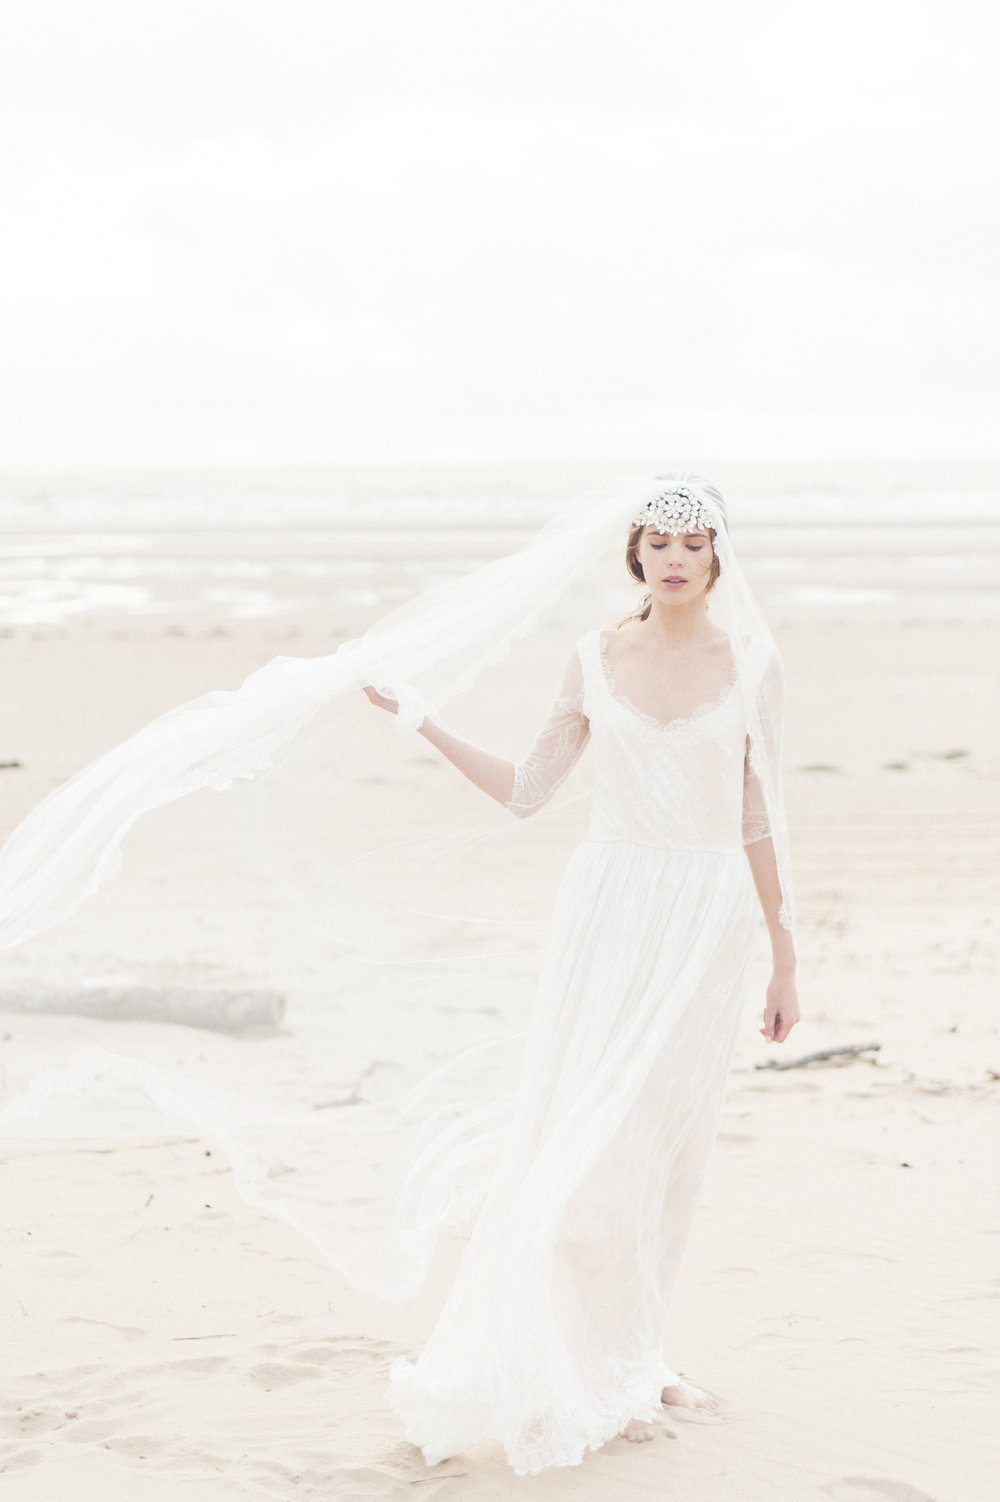 Kate-Beaumont-Wedding-Dresses-Formby-Beach-Emma-Pilkington-34.jpg